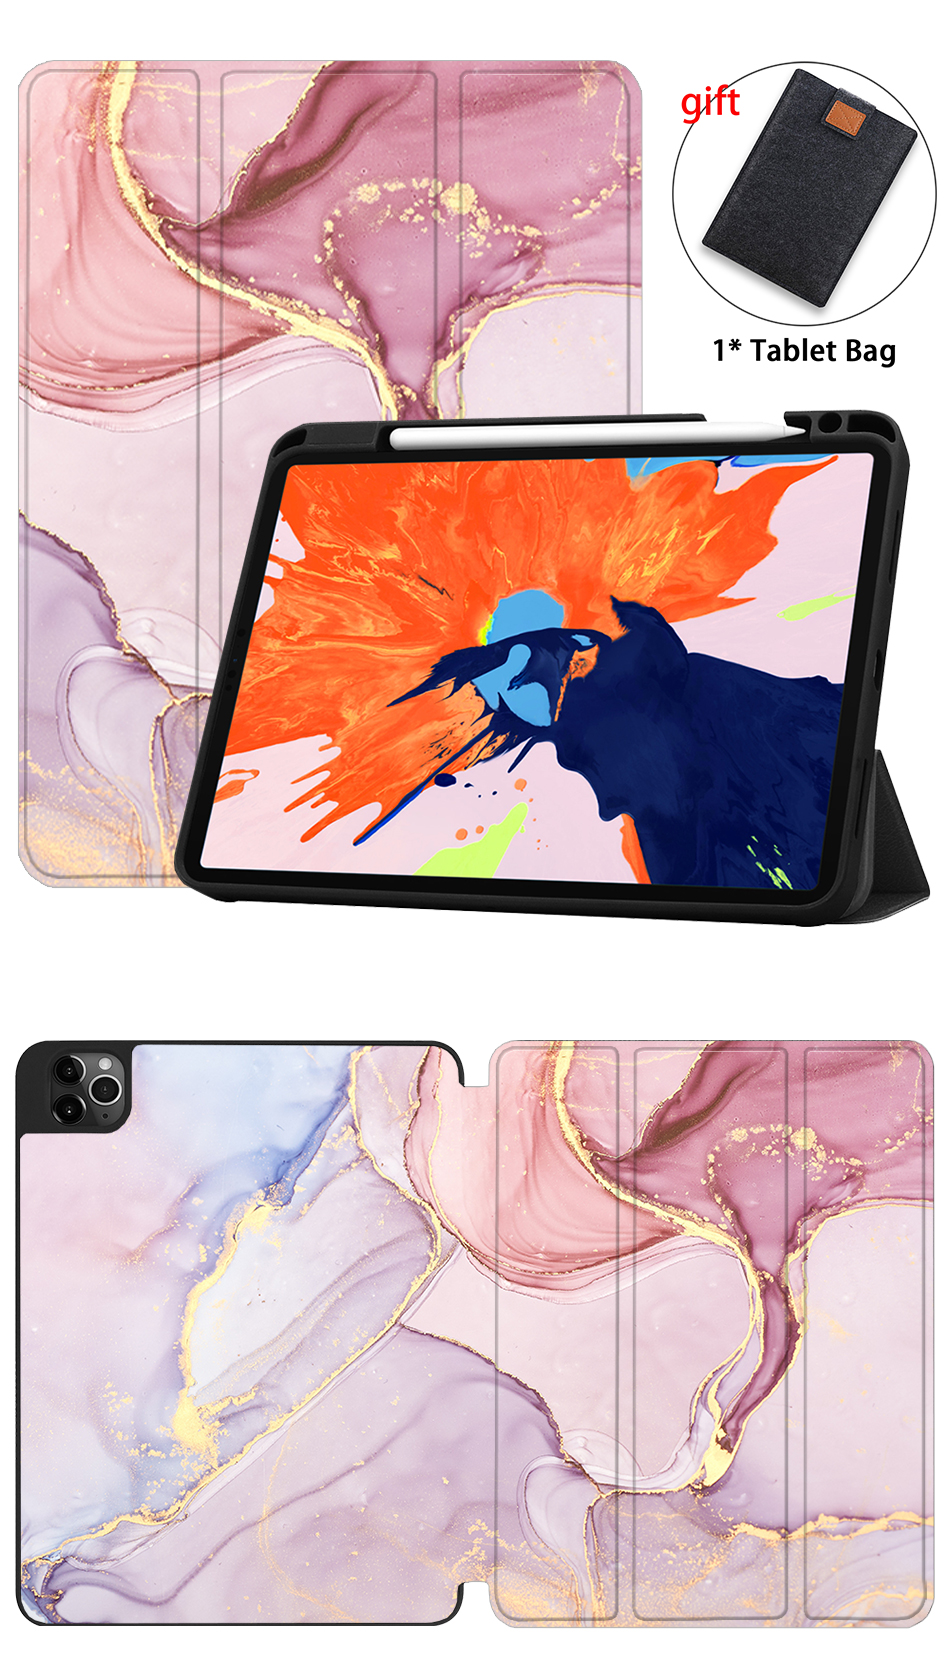 2020 Tablet iPad MTT inch TPU+PU Pro Stand For Leather Generation 12.9 Soft 4th Case Flip